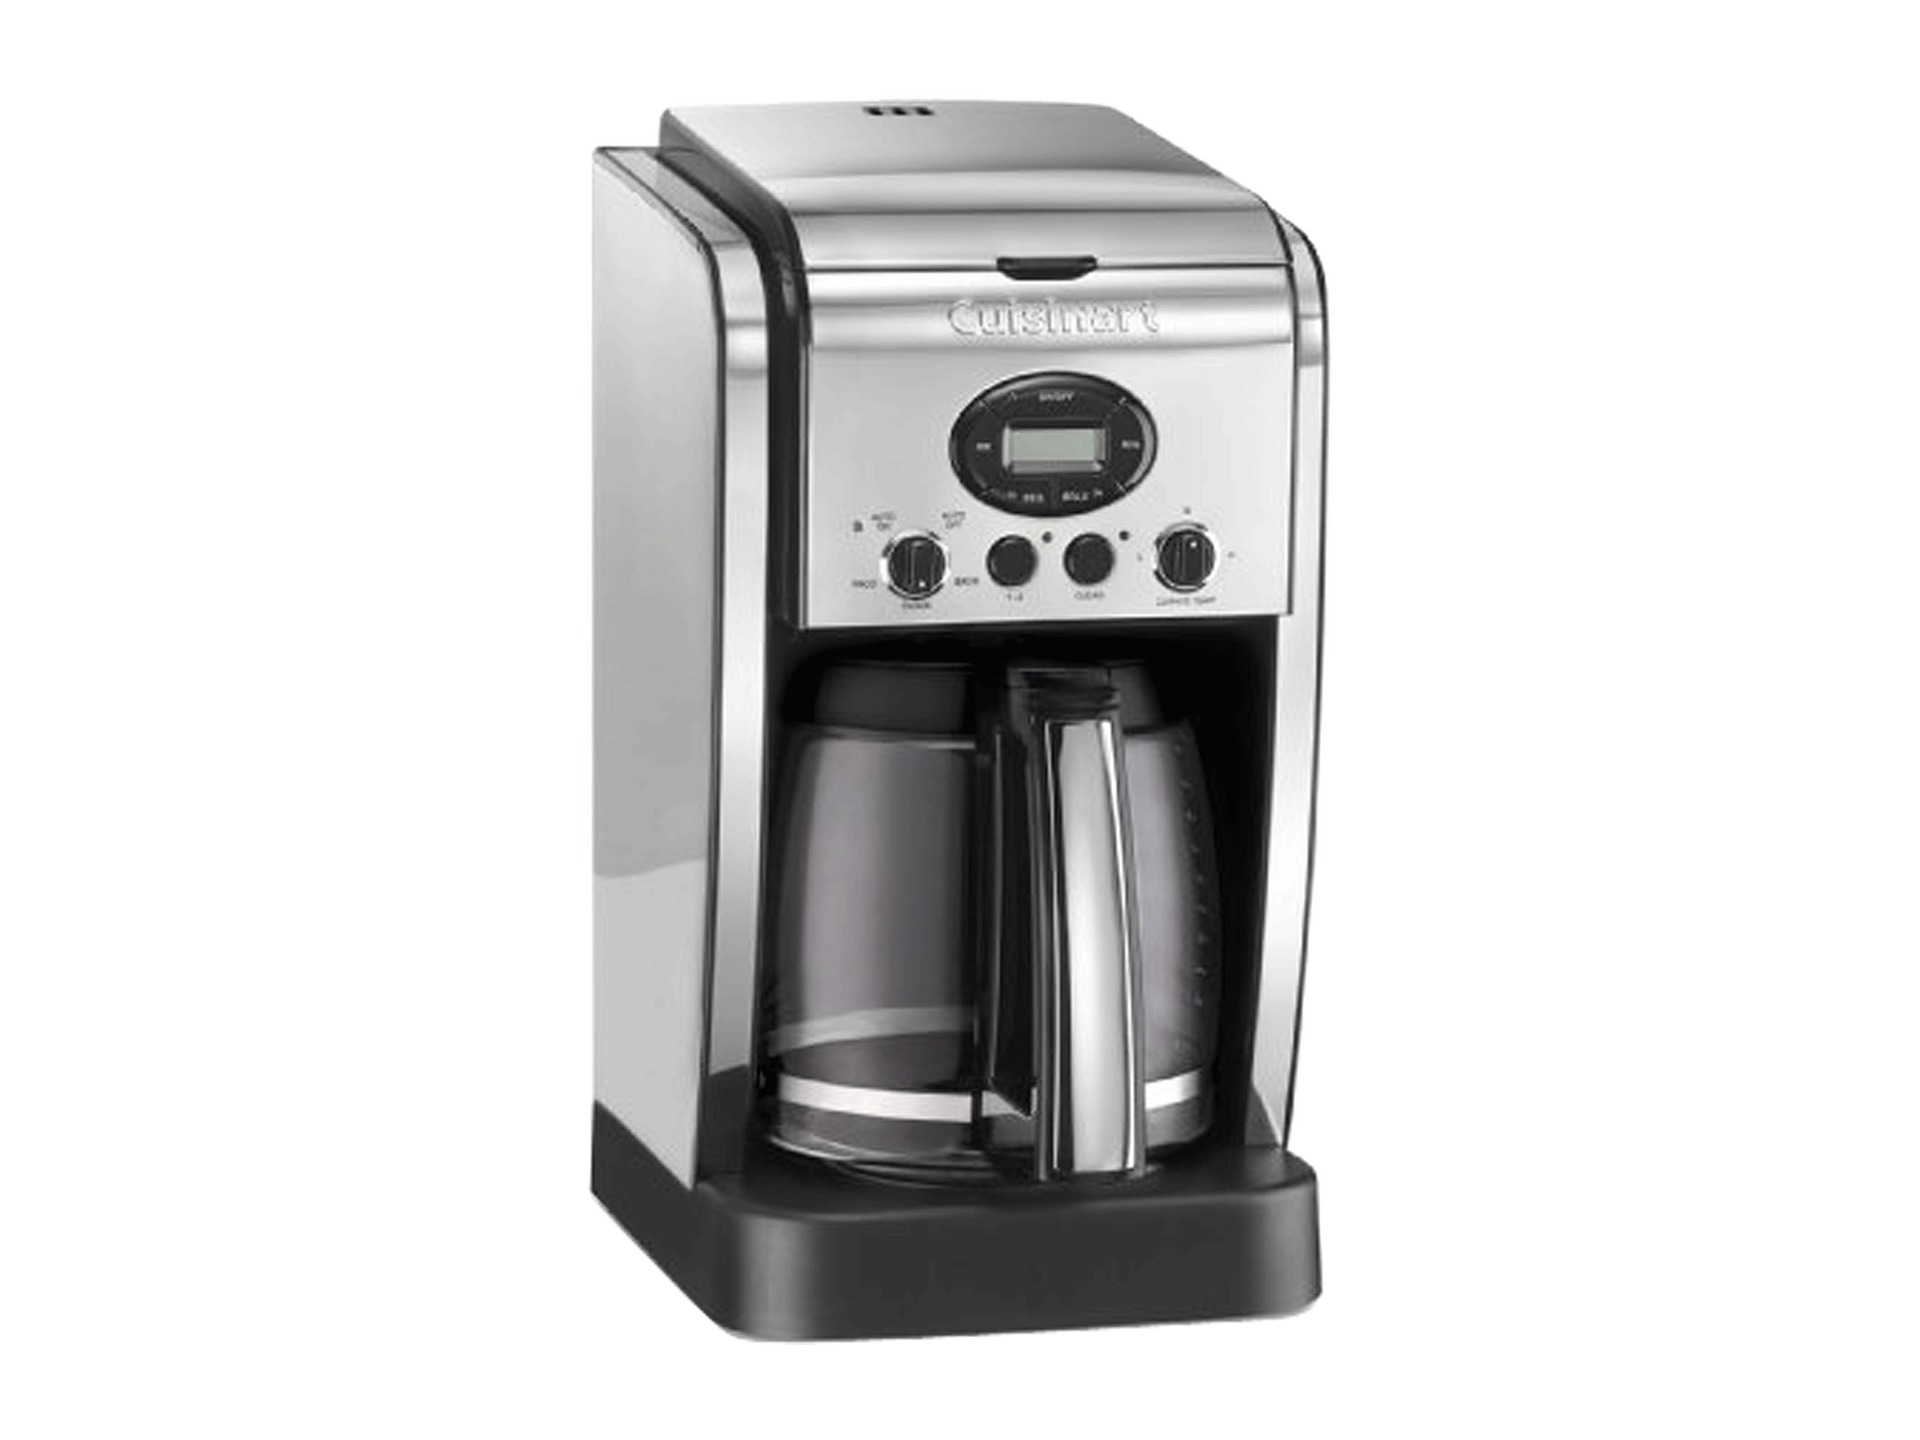 Cuisinart Coffee Maker Overheating : Cuisinart Brew Central 14 Cup Programmable Coffee Maker Shipped Free at Zappos